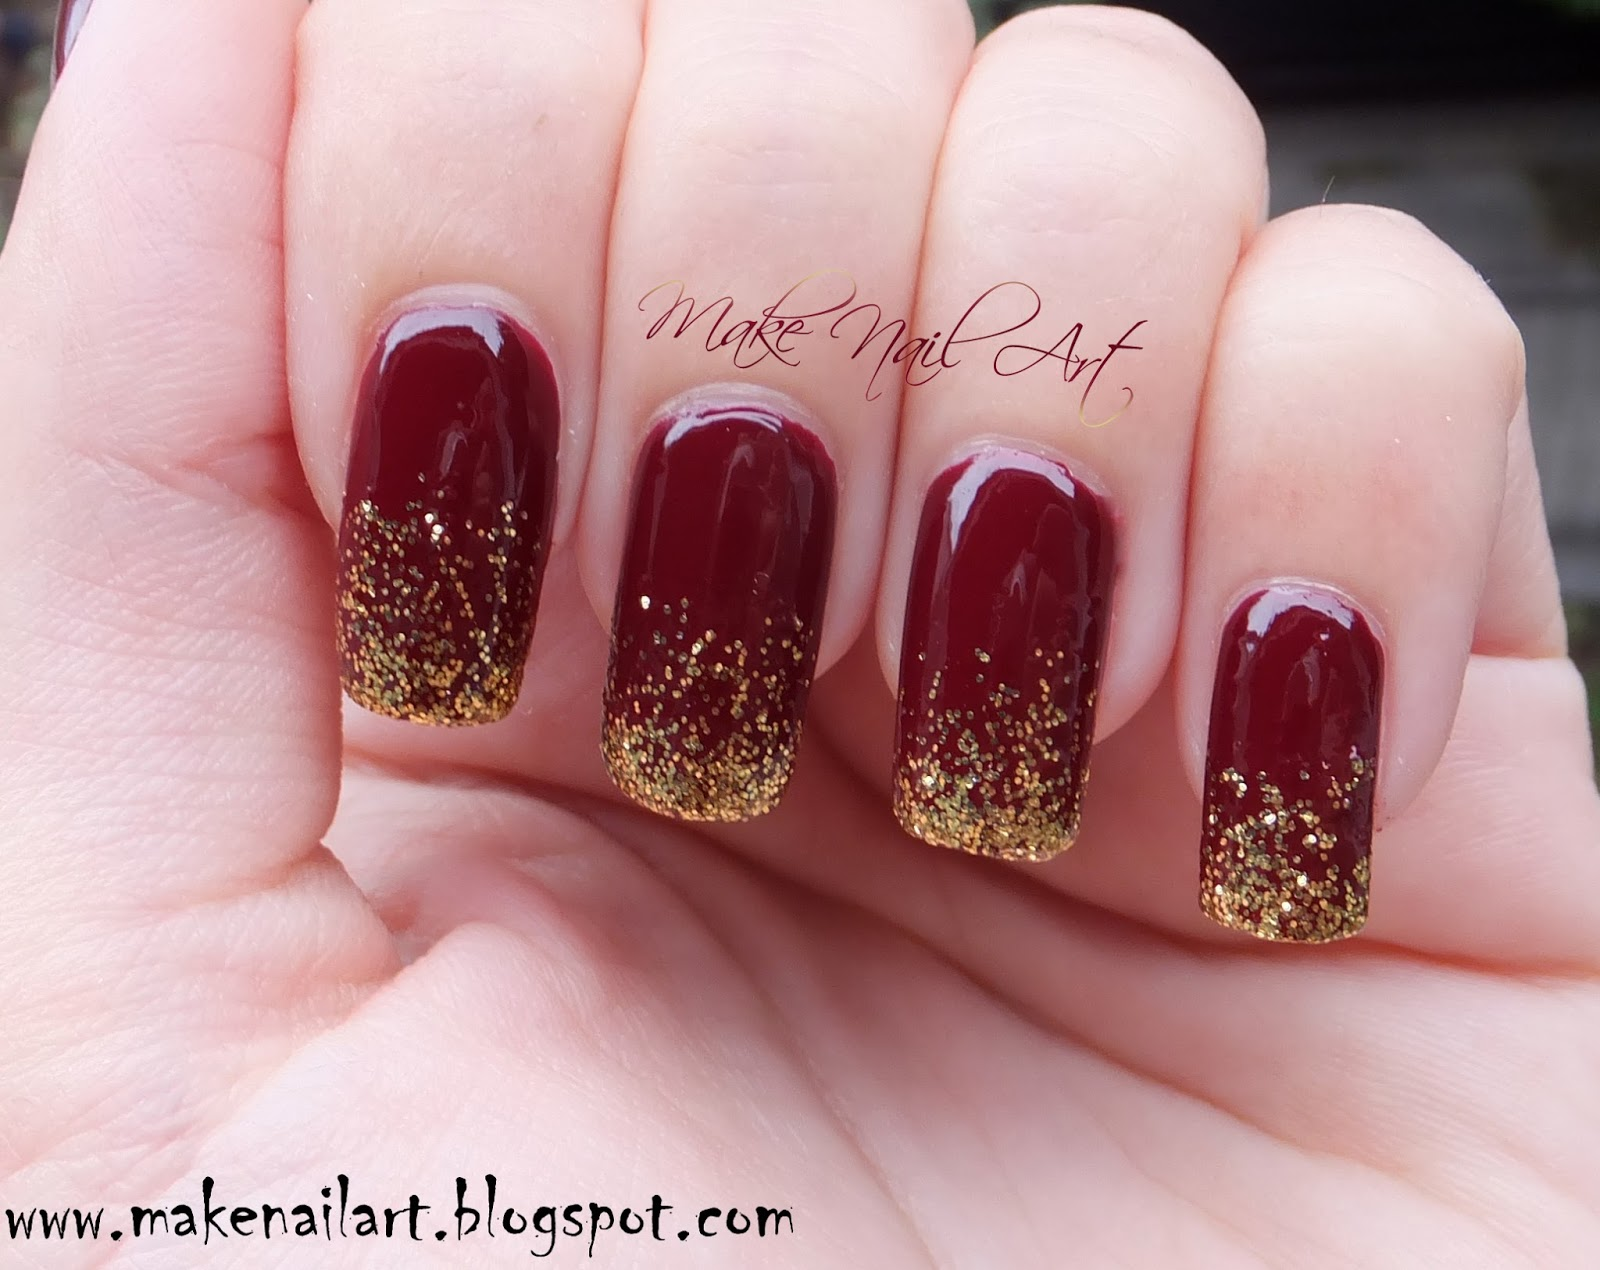 Make Nail Art: September 2015